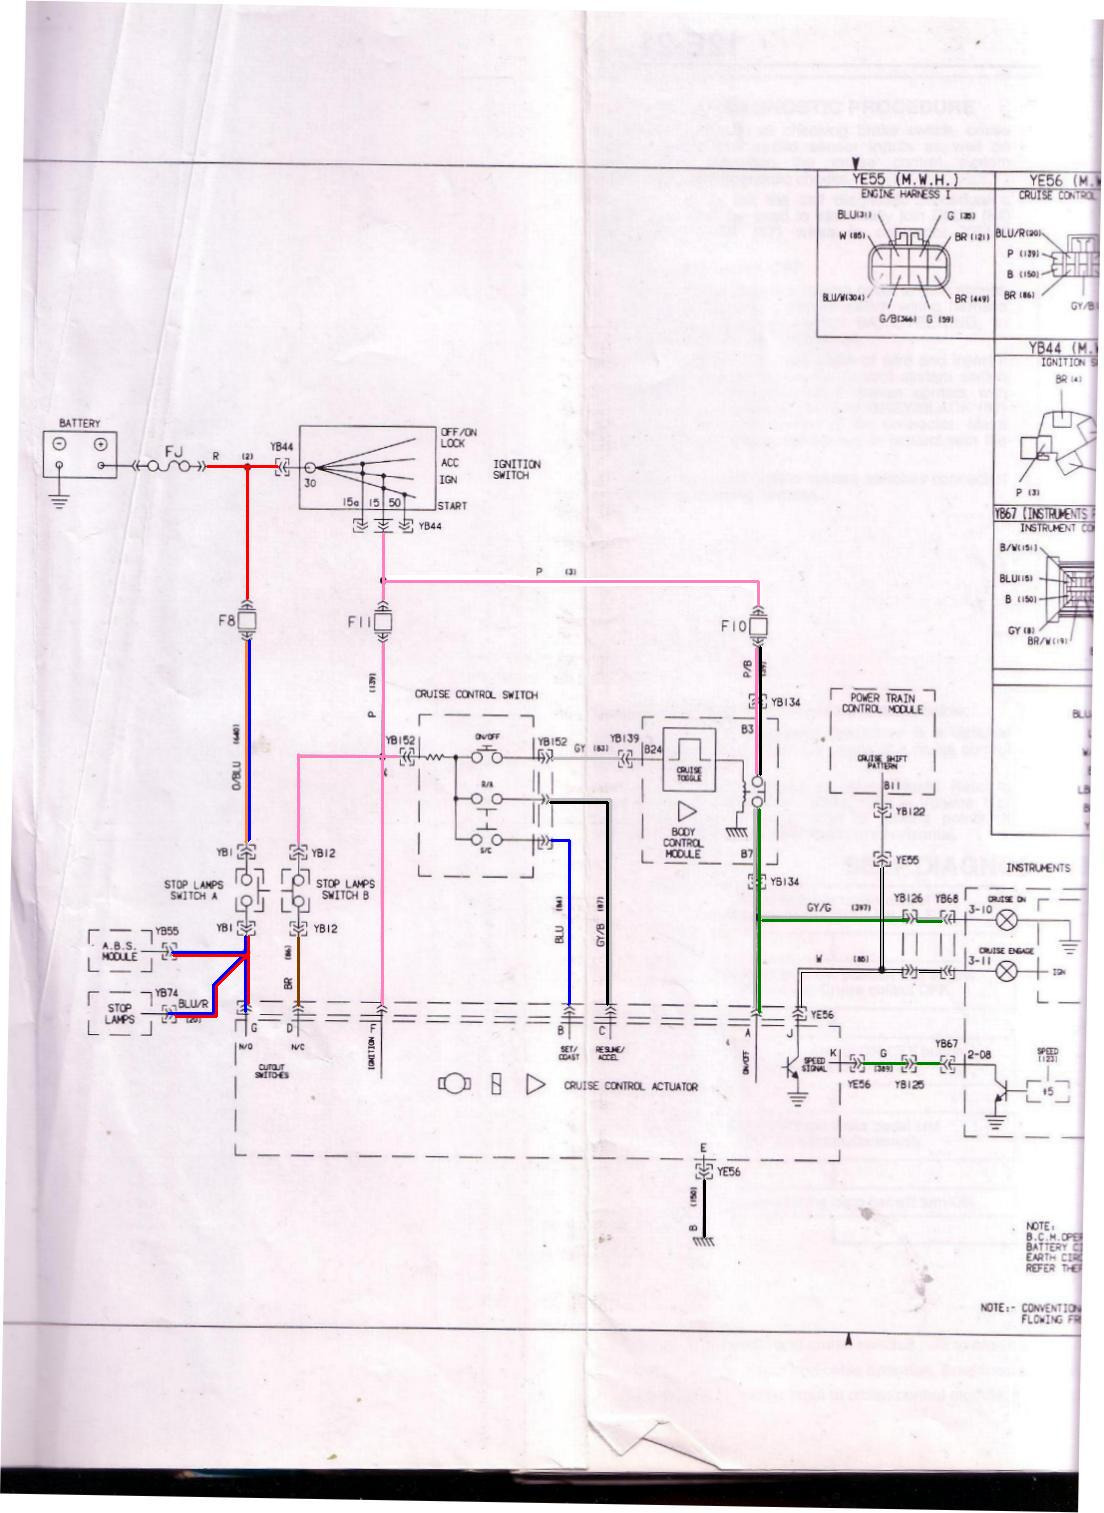 vs wiring diagram lr 63663 wiring diagram at eliteediting.co